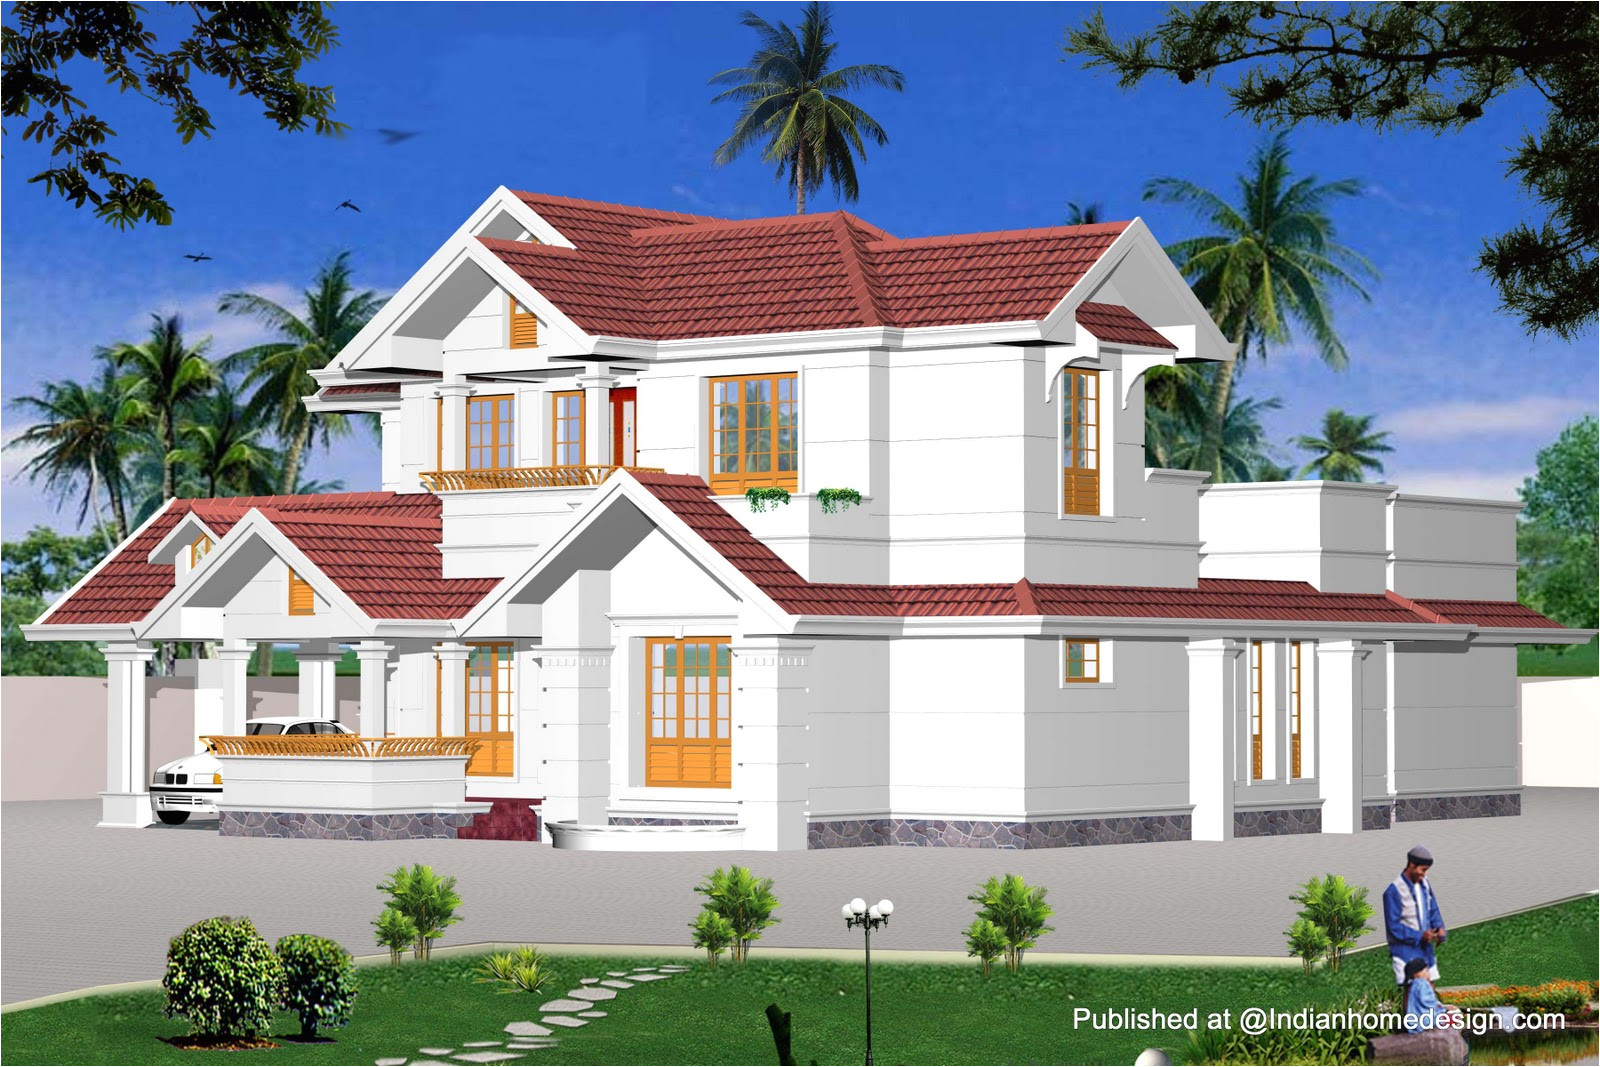 home design house plans withal indian model house plans exterior views home design inspiration